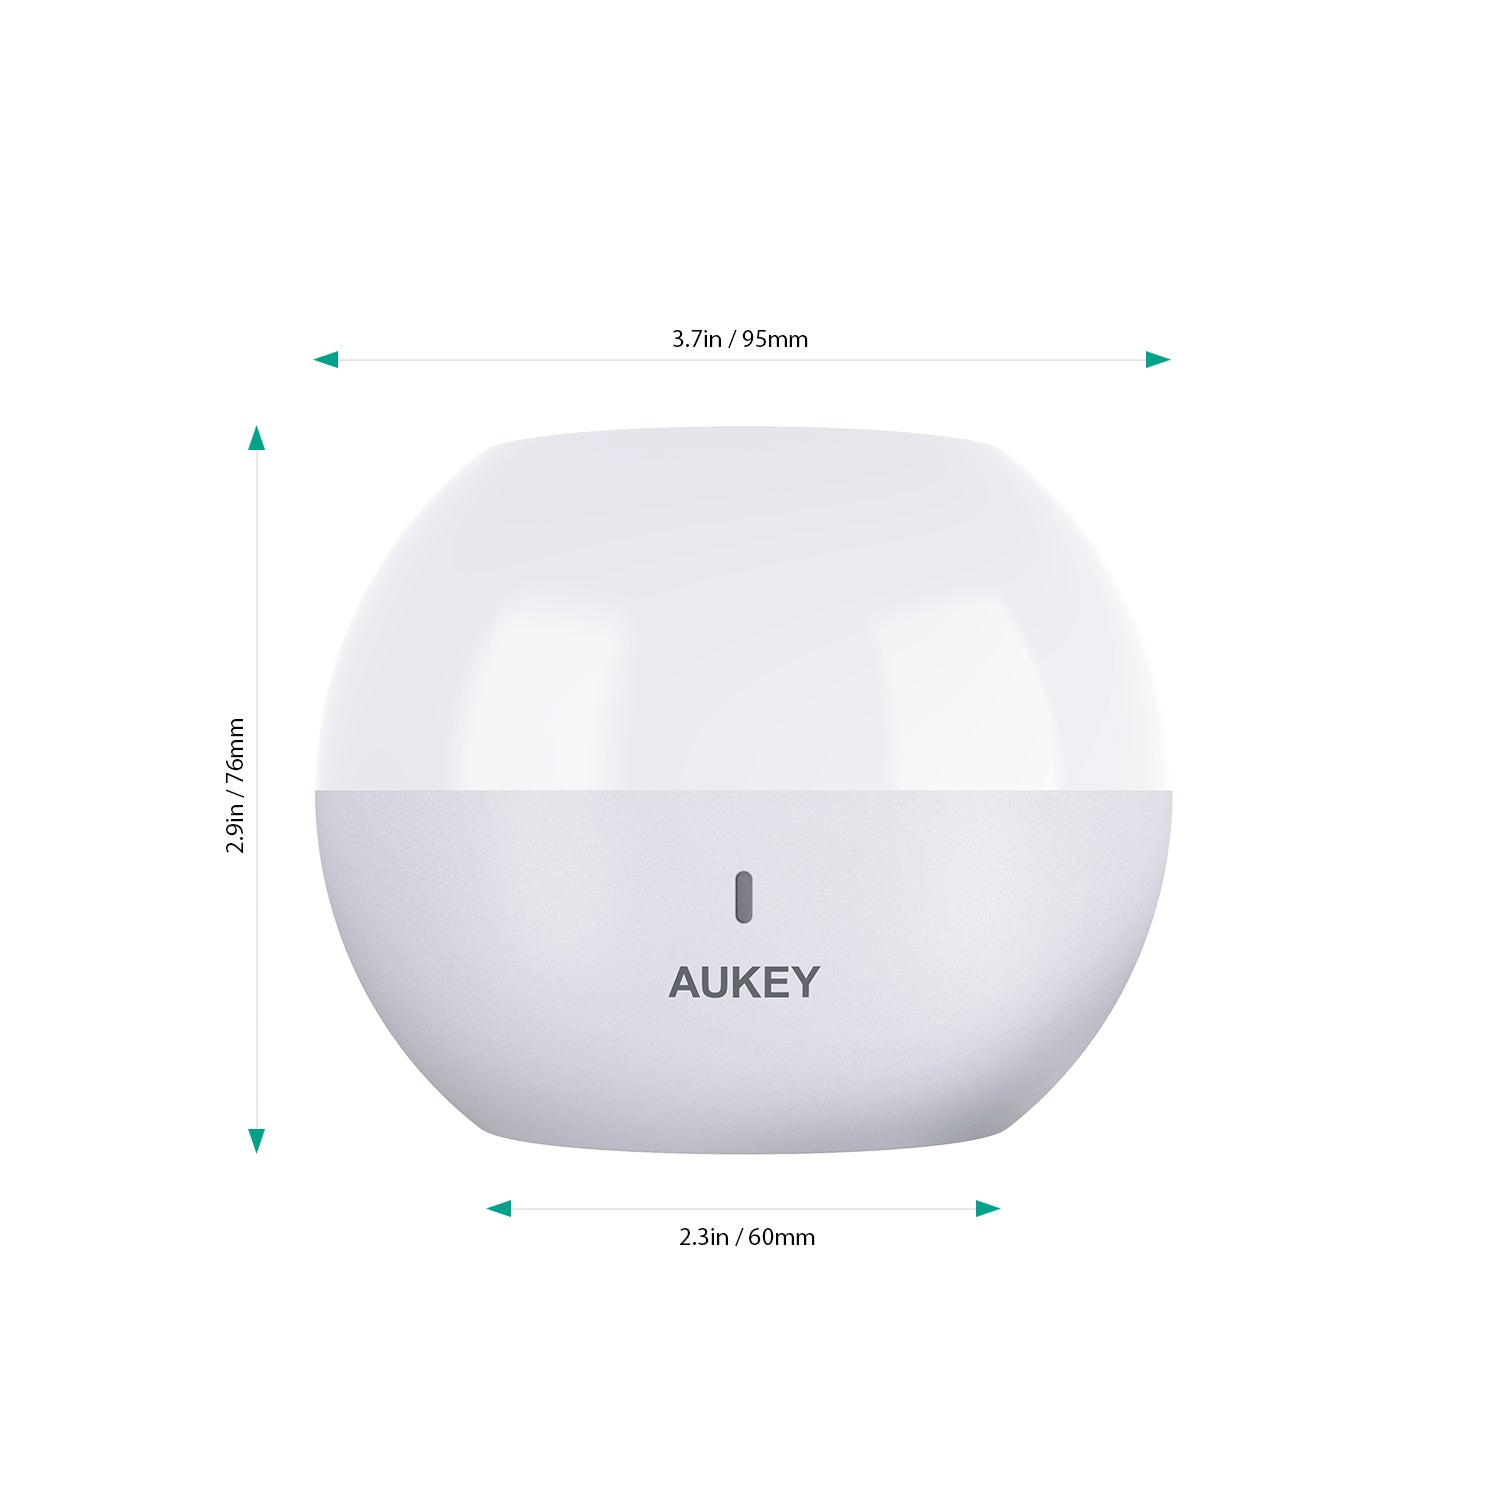 AUKEY Quality Mini RGB Light / LT-ST23White / LED Lighting